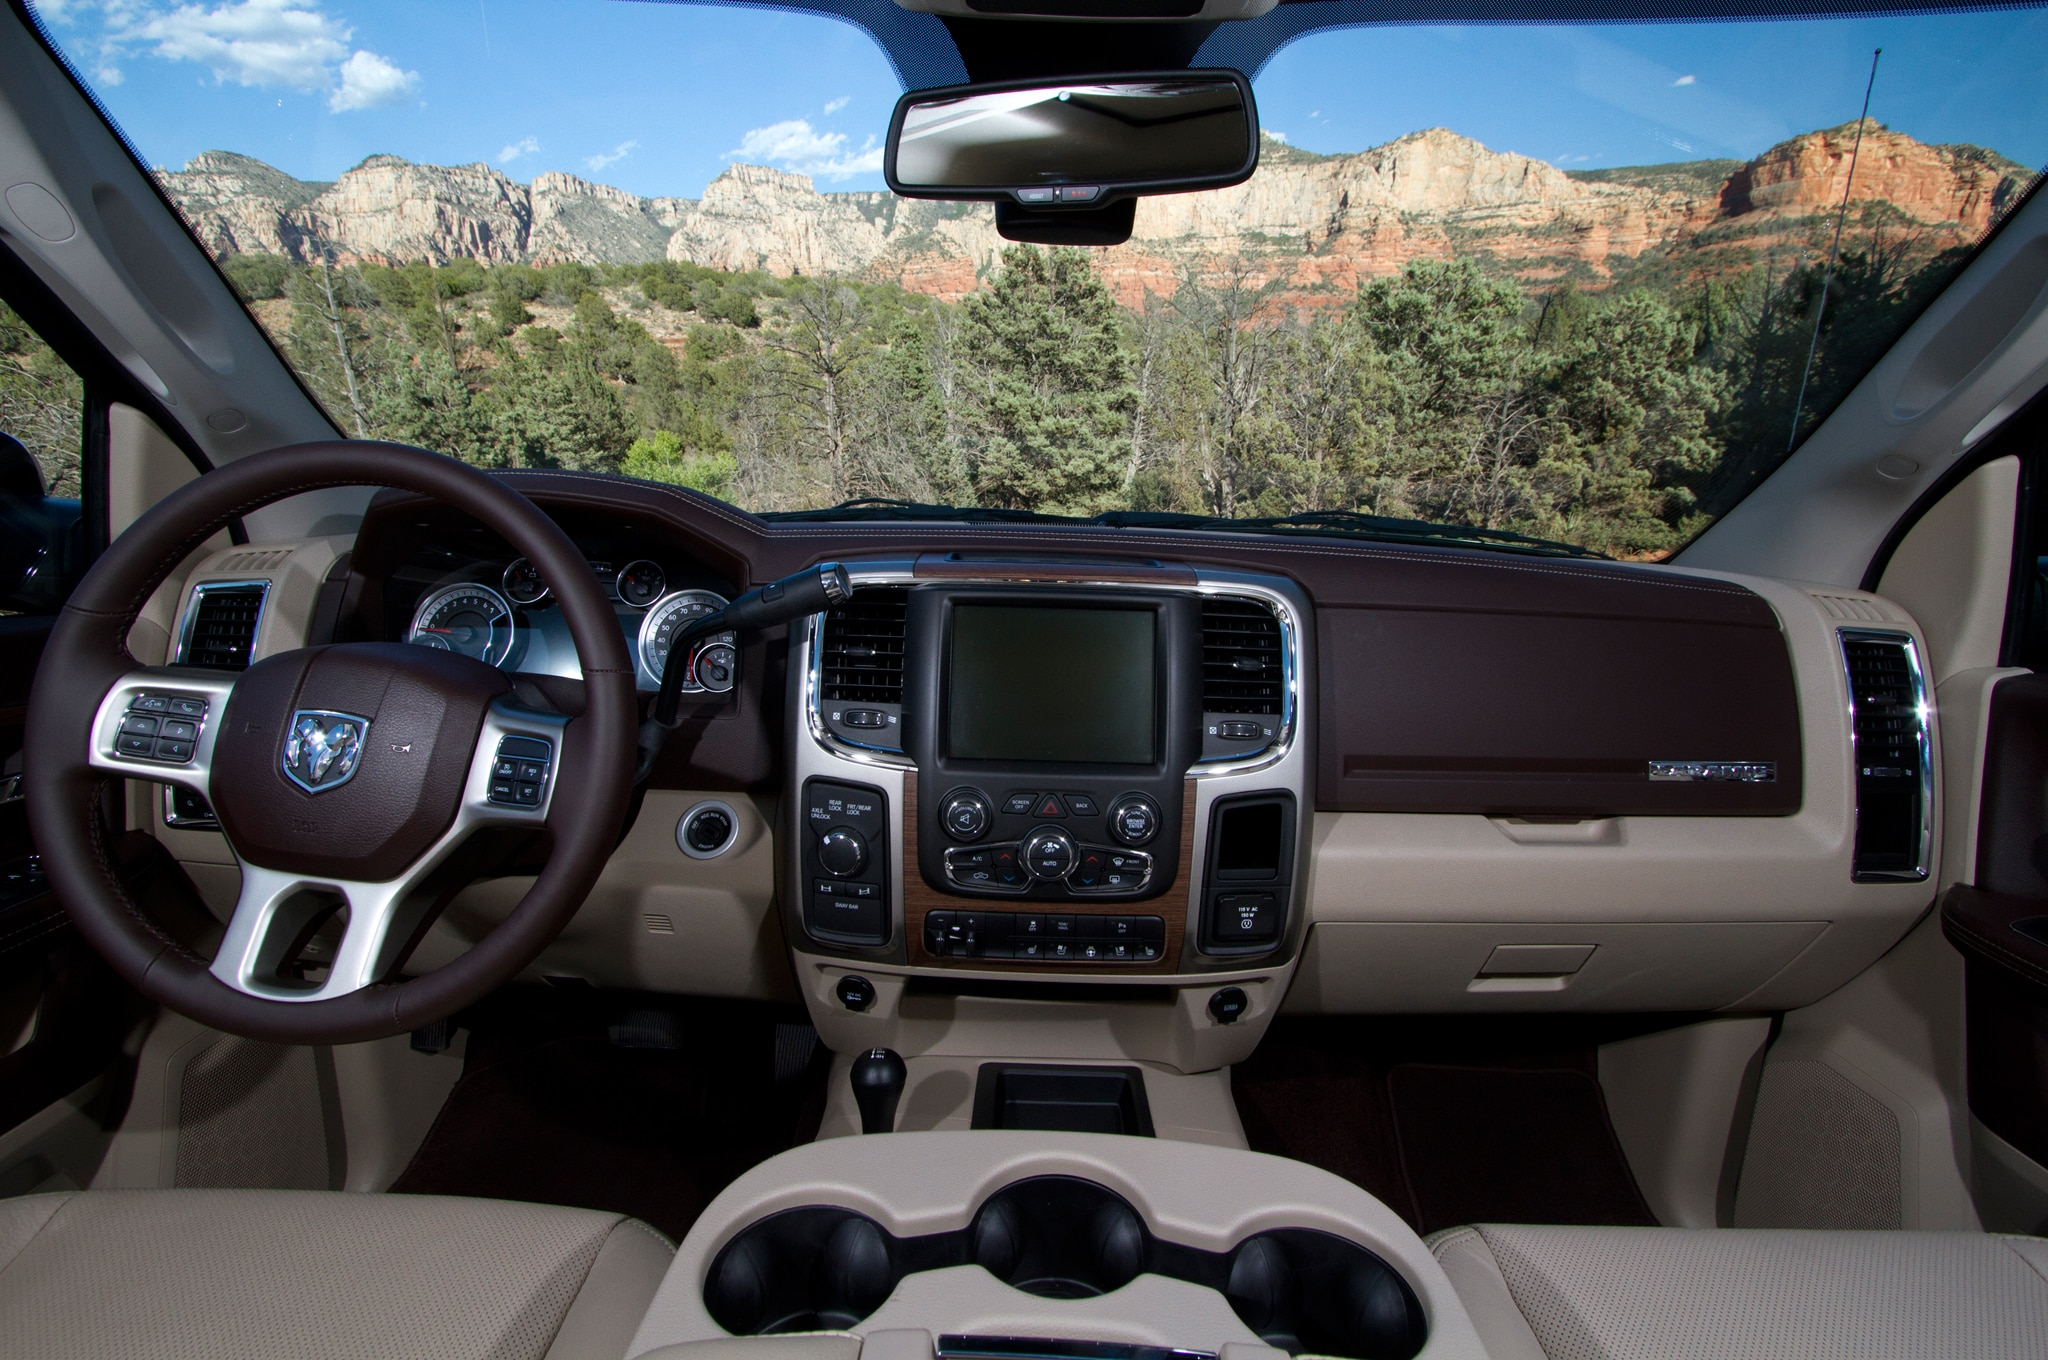 2014 Ram 2500 Power Wagon interior